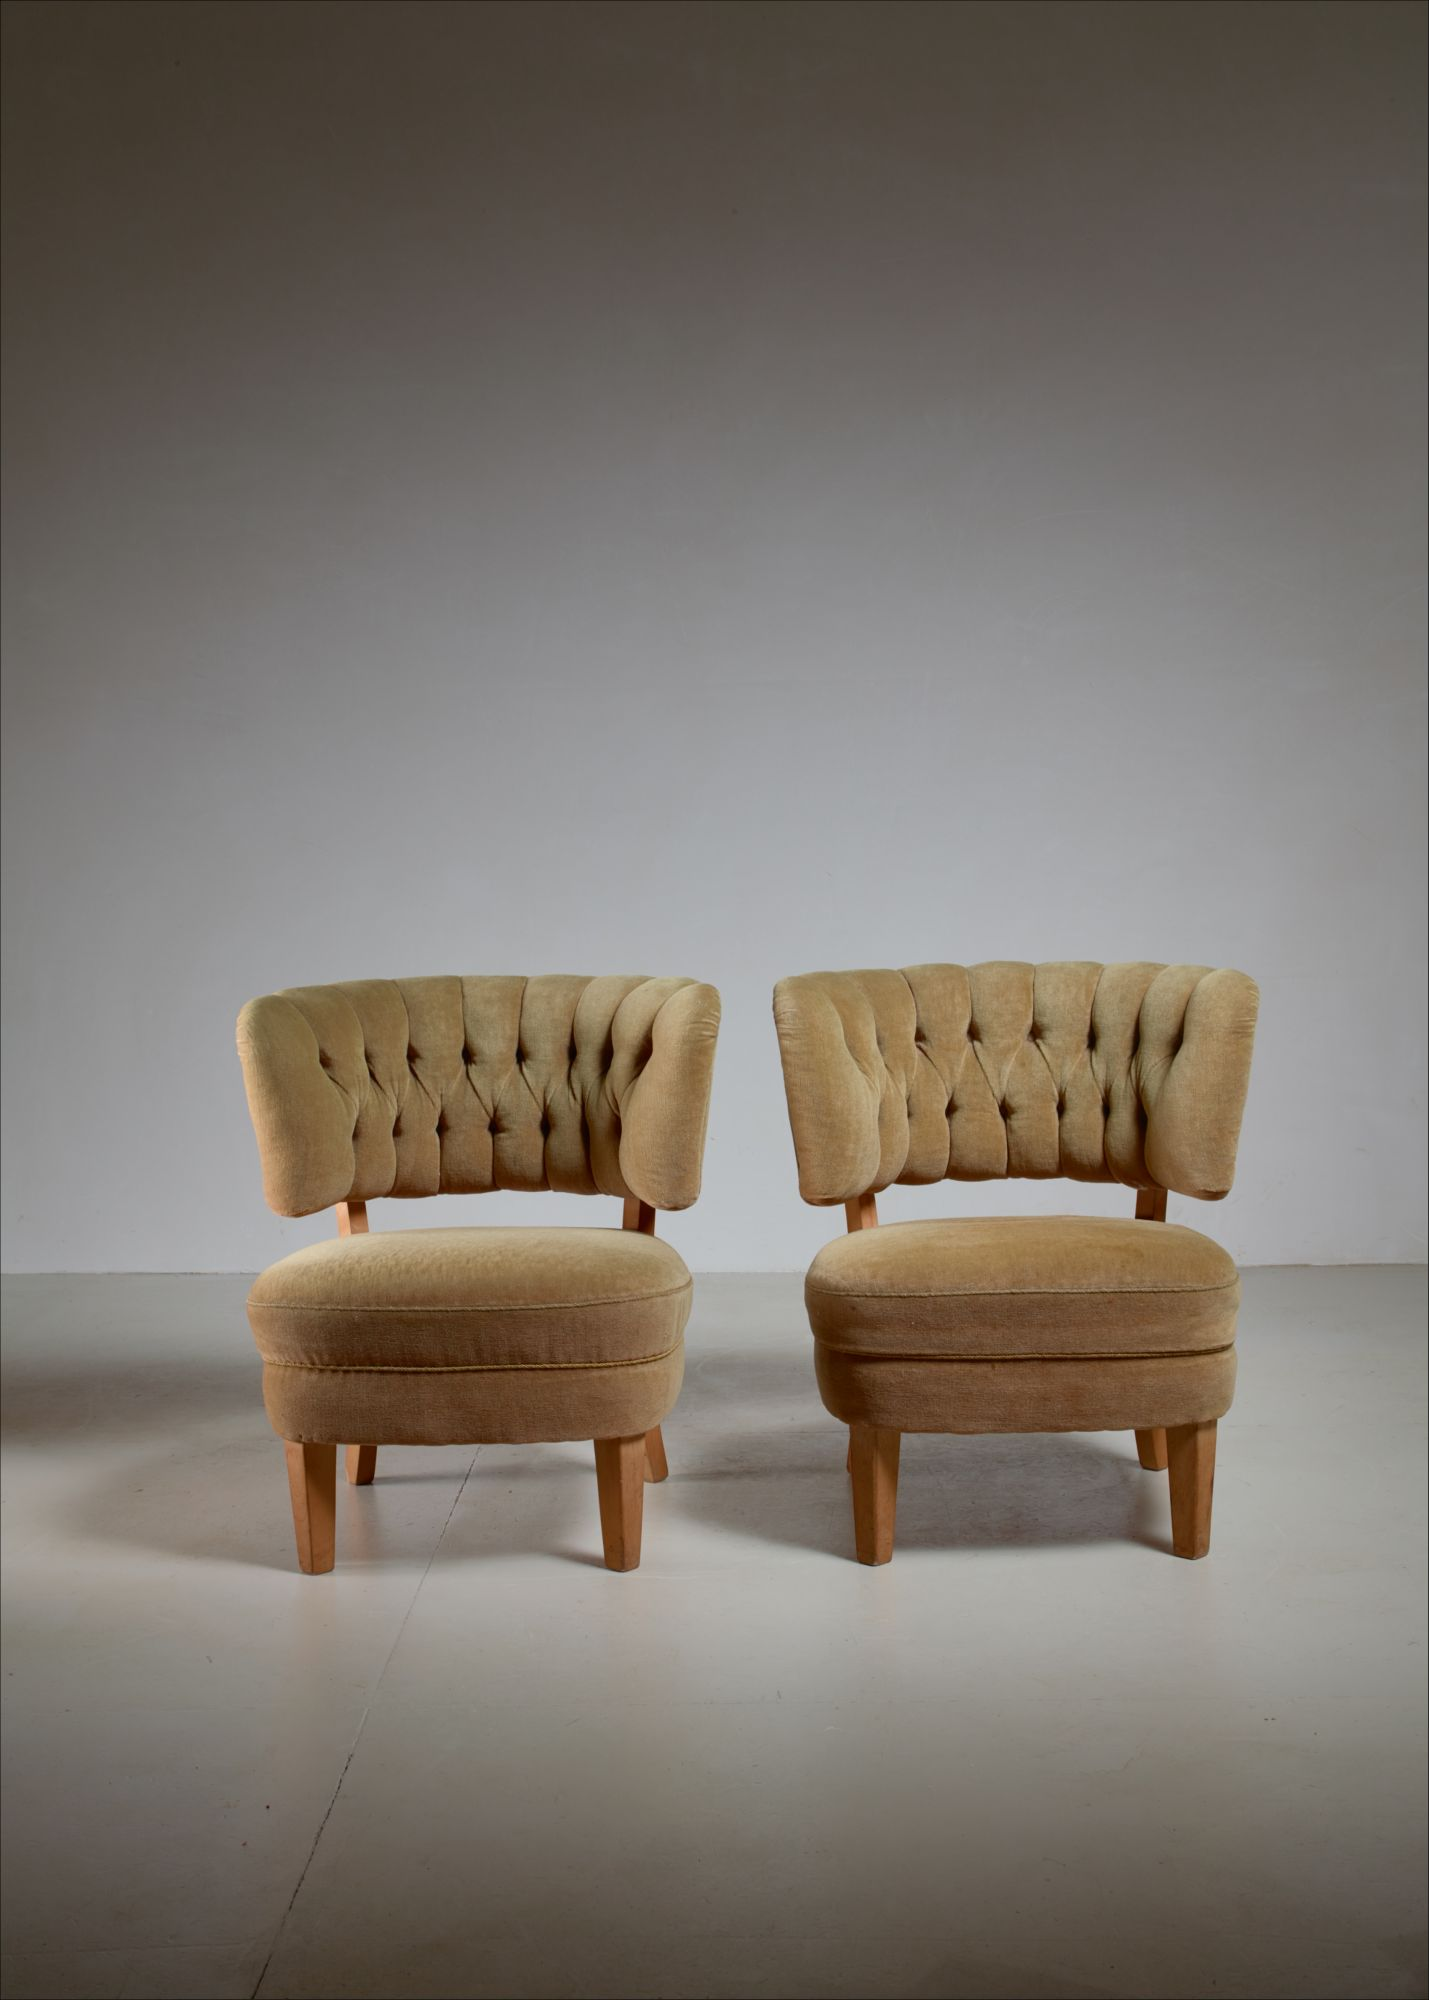 Swell Otto Schulz Pair Of Lounge Chairs By Jio Mobler Sweden 1940S Spiritservingveterans Wood Chair Design Ideas Spiritservingveteransorg